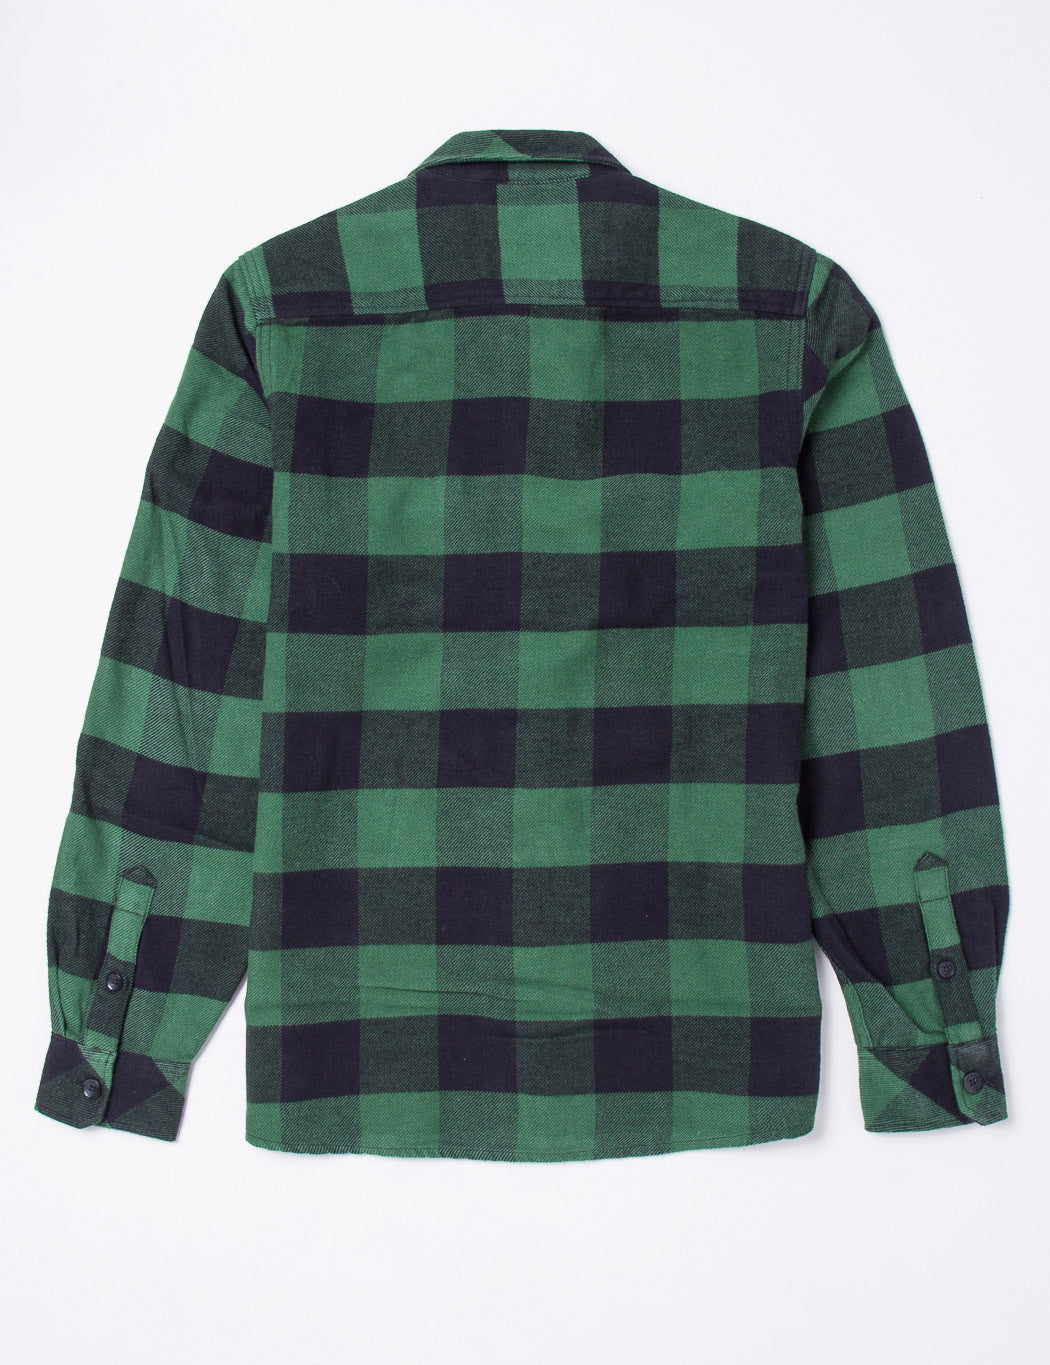 Dickies Sacramento Plaid Shirt - Pine Green